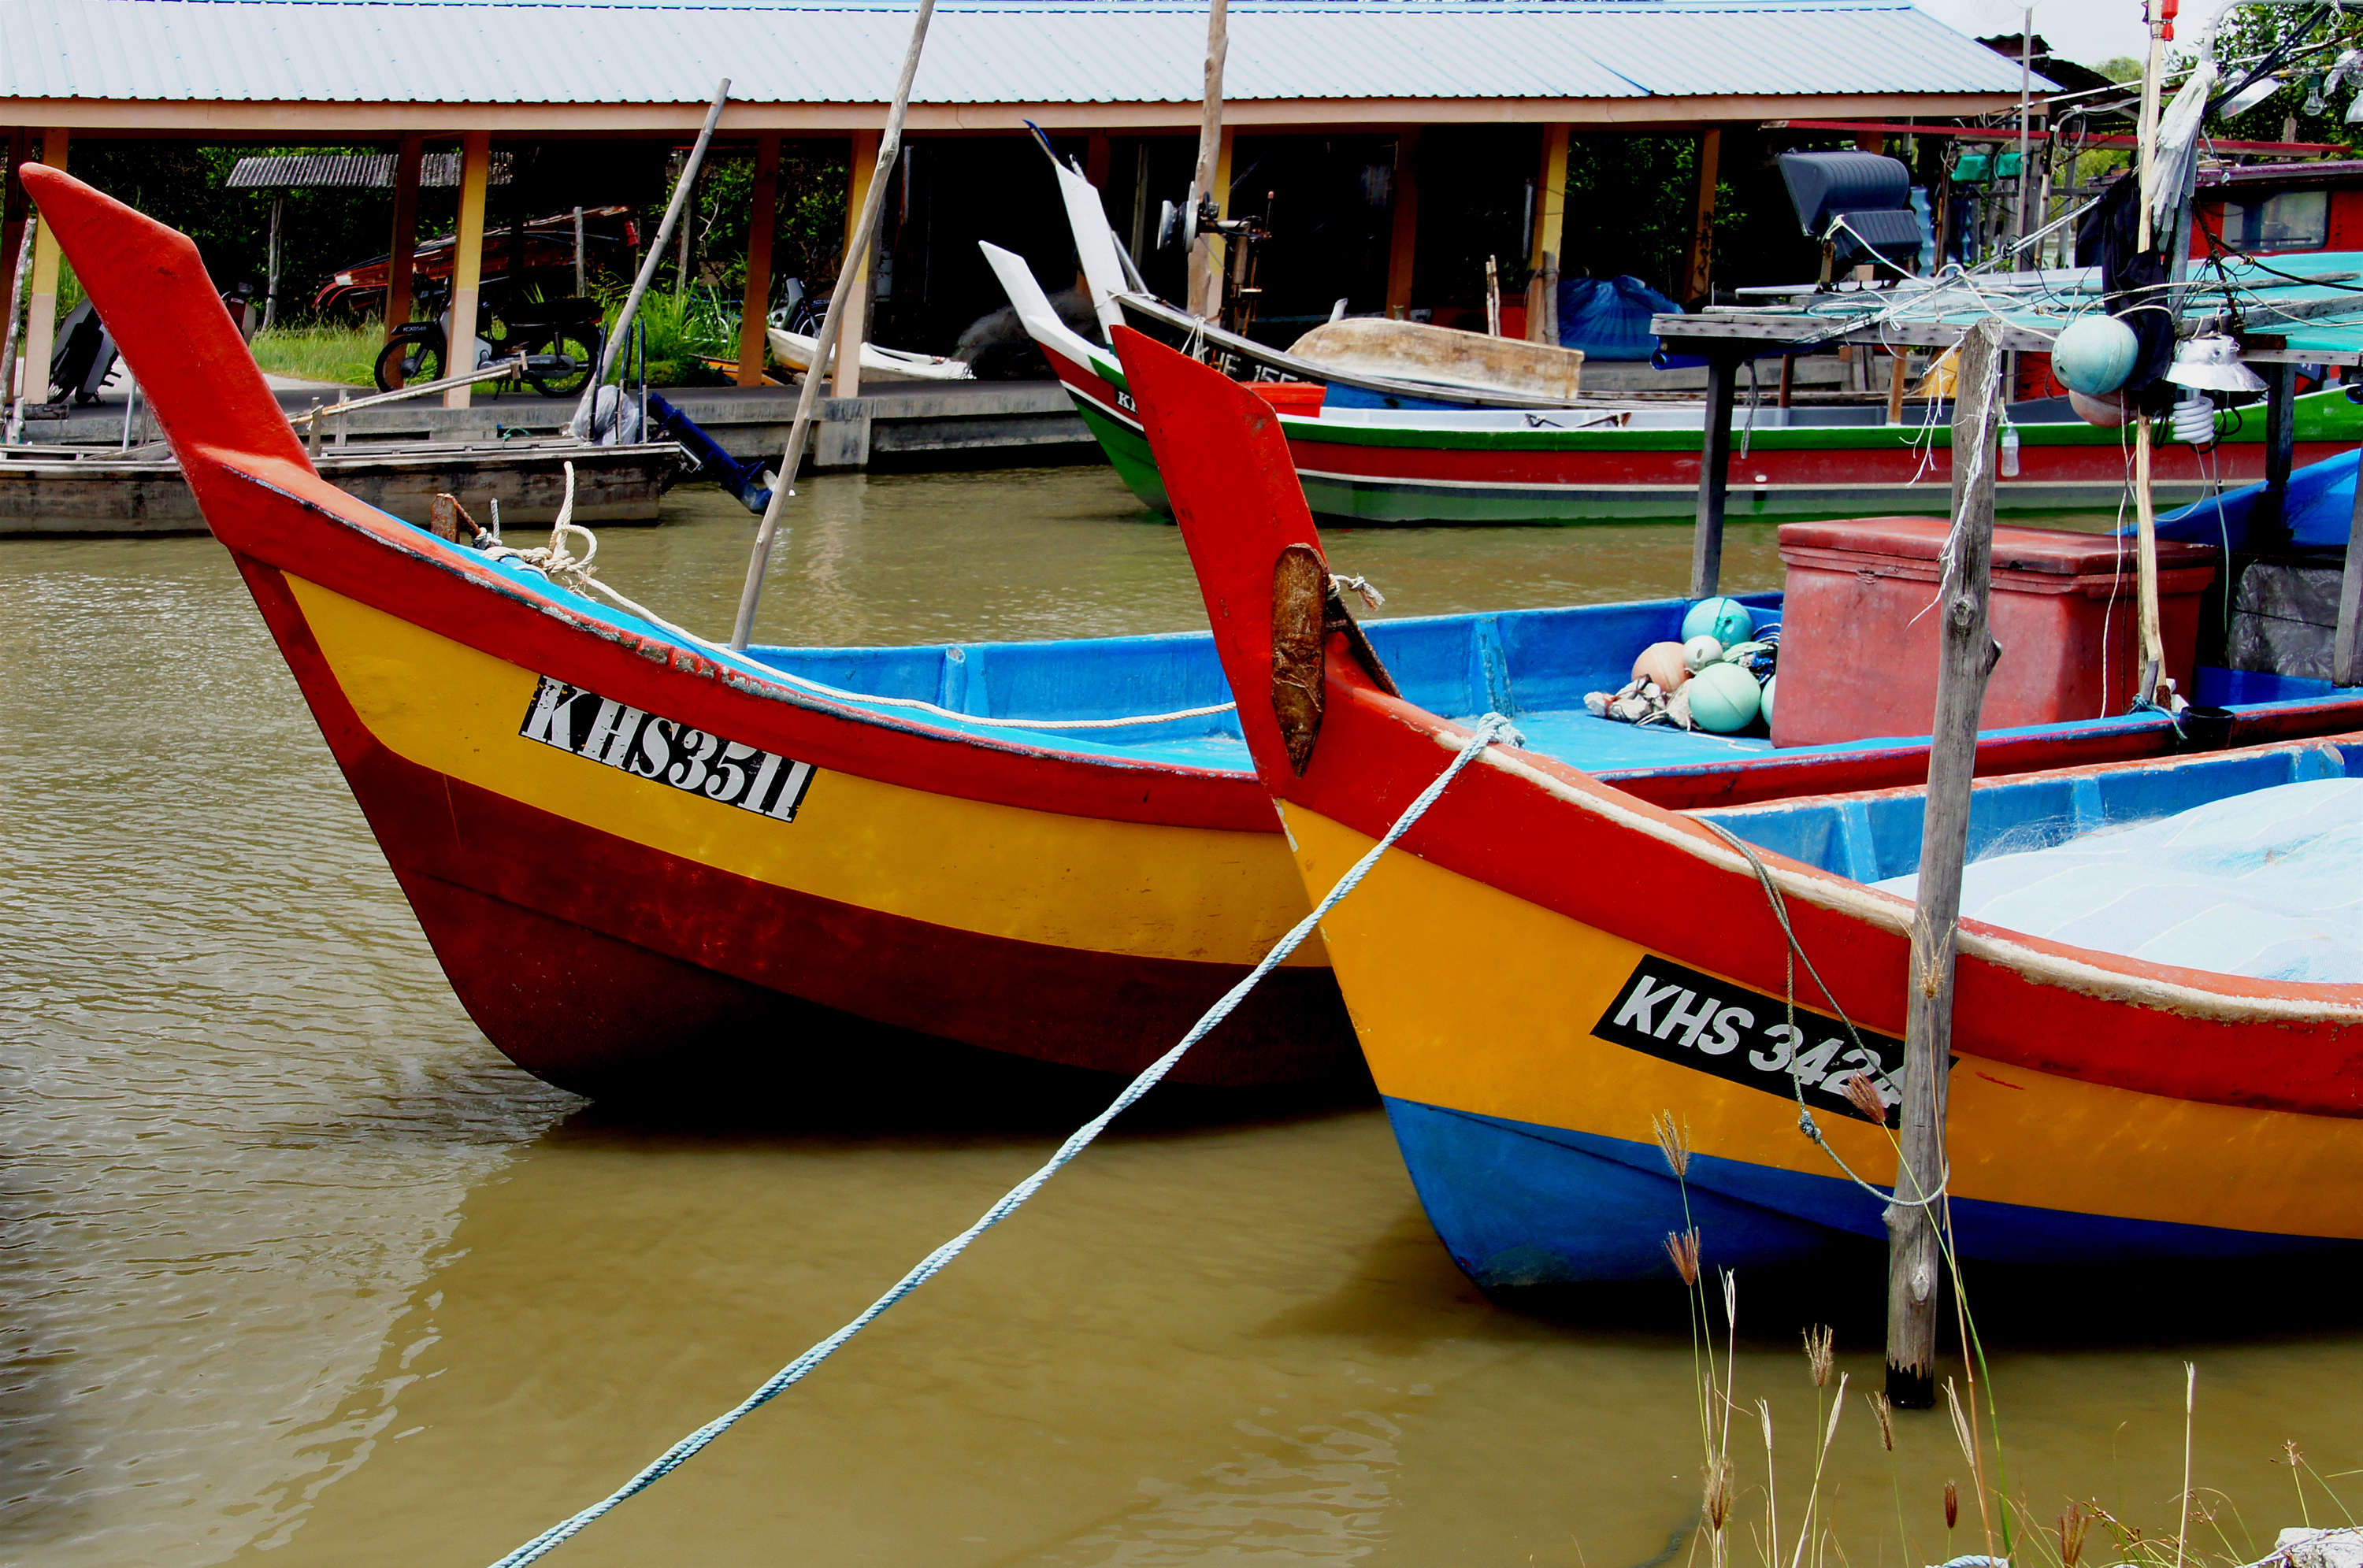 Fishing boats of malaysia (6) photo